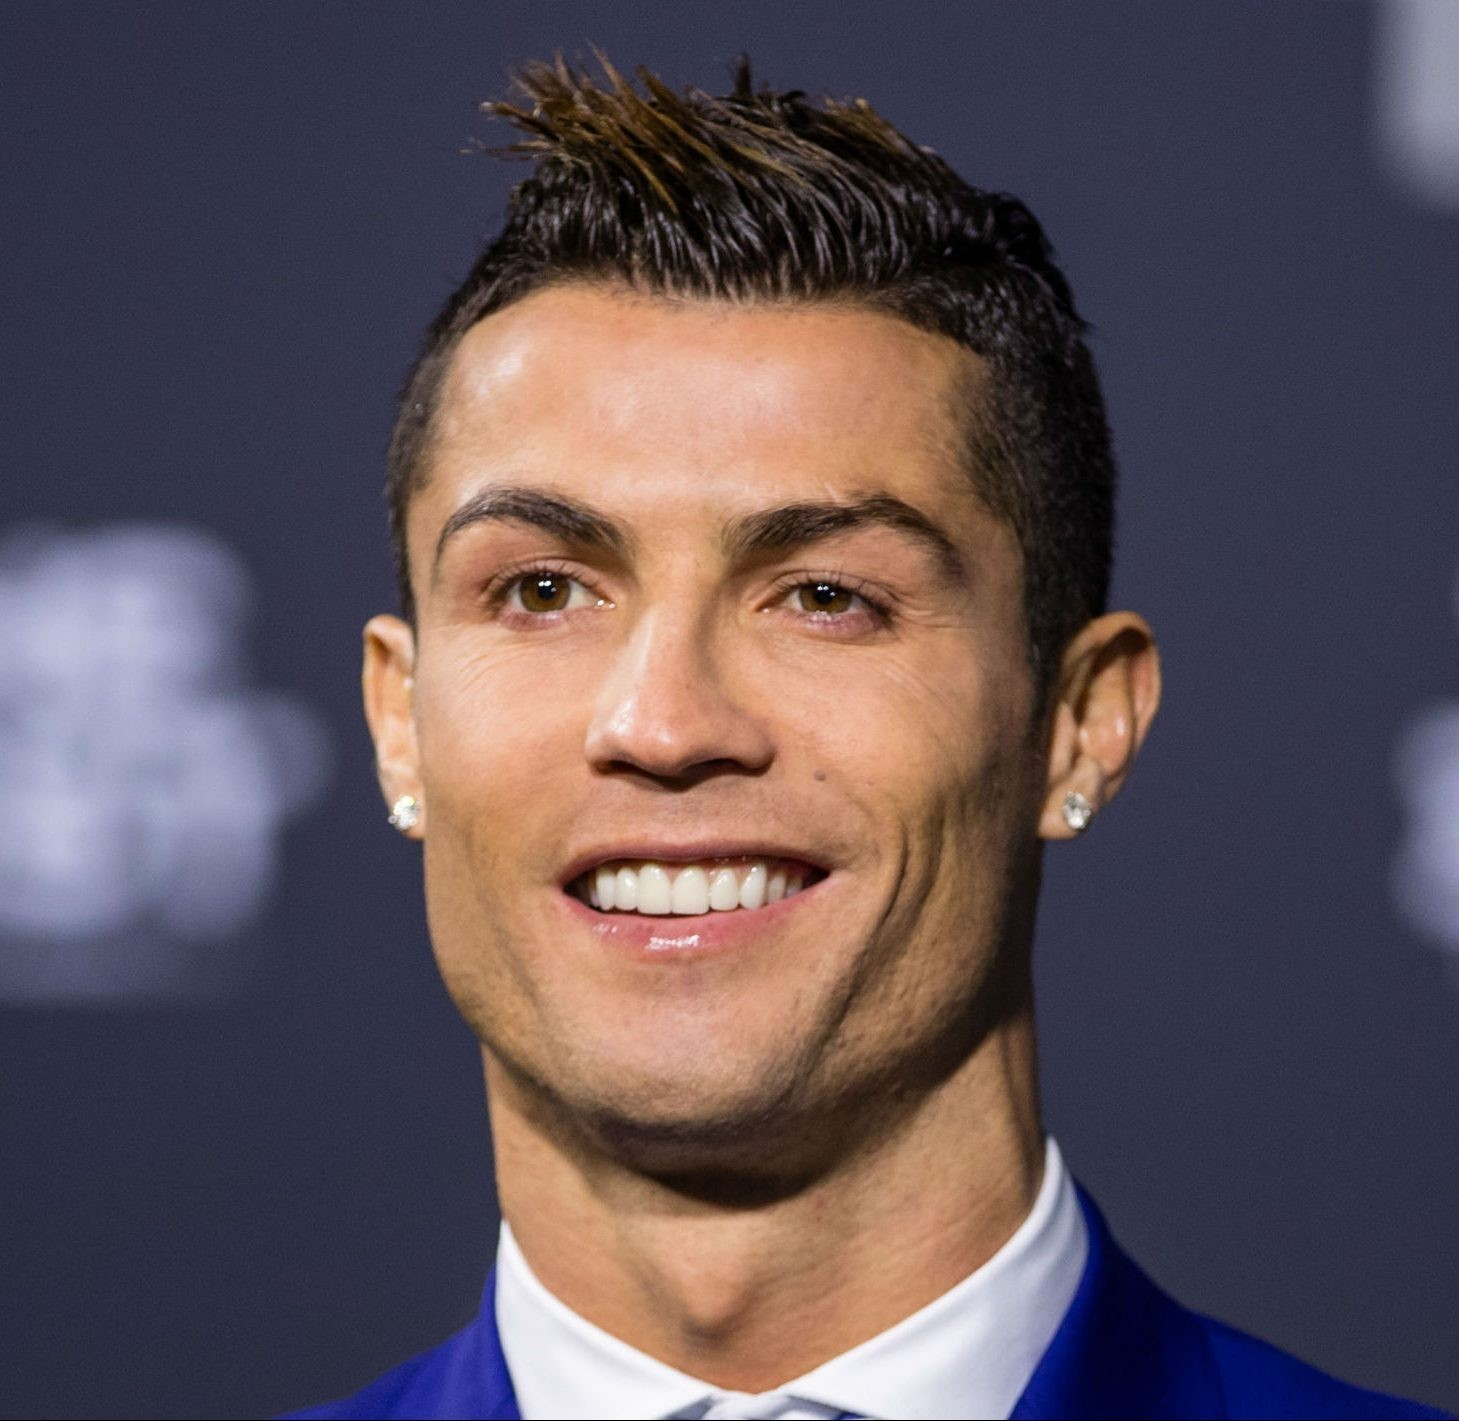 ronaldo hairstyle design - HD 1459×1421